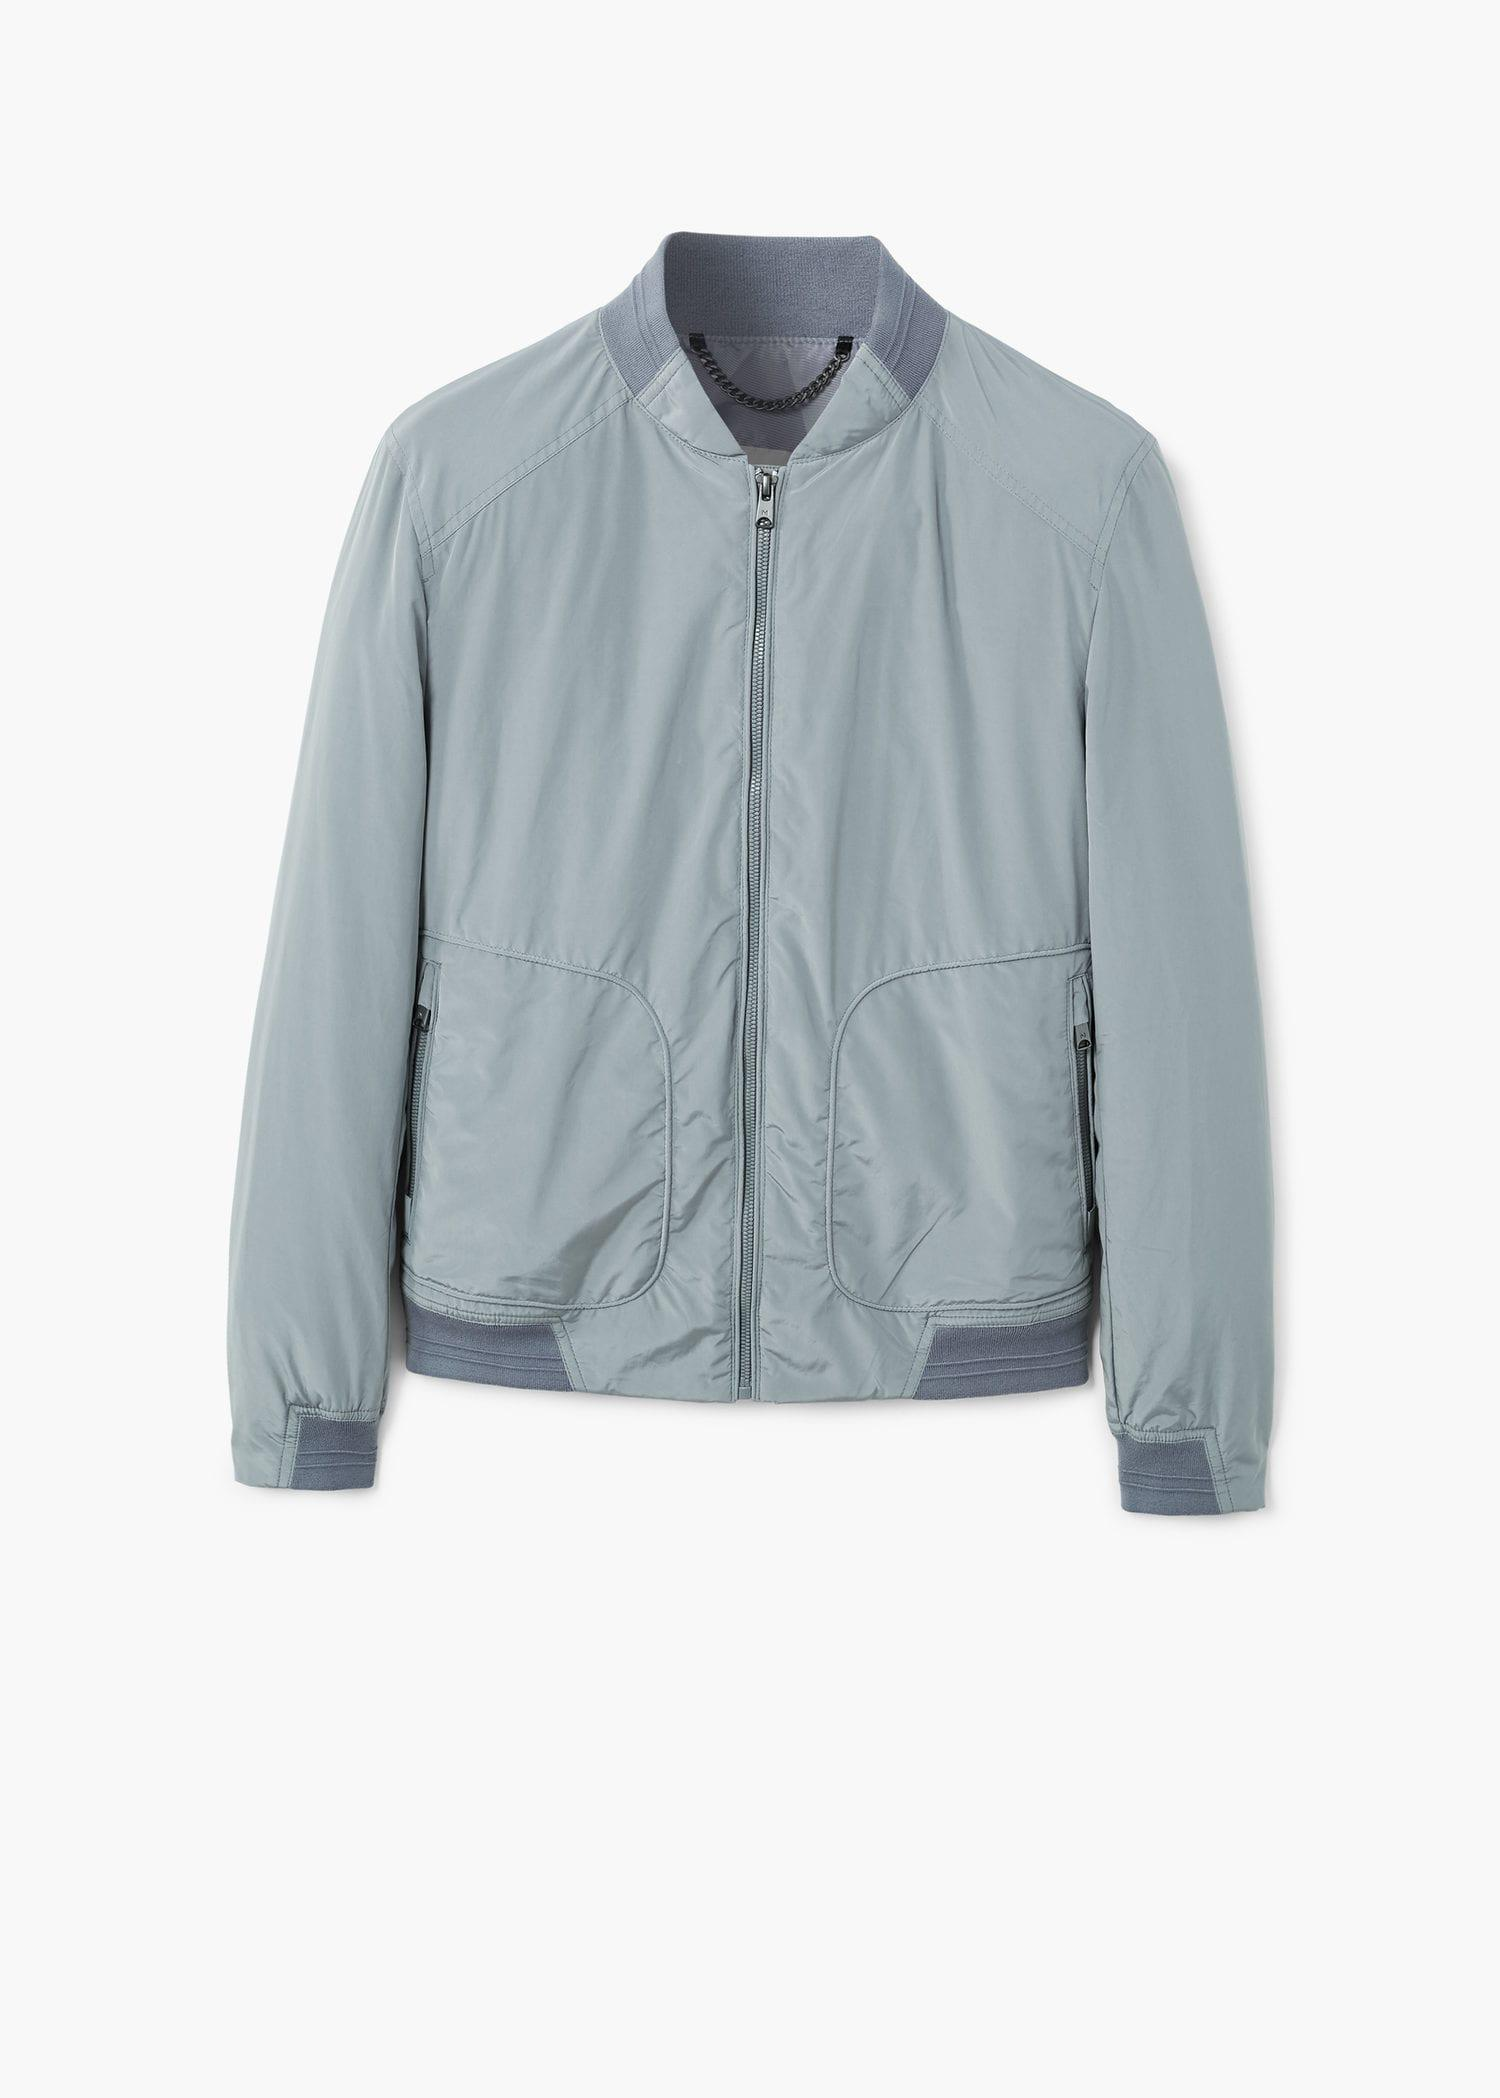 Mango Synthetic Folding Water-repellent Bomber Jacket in Grey (Grey) for Men